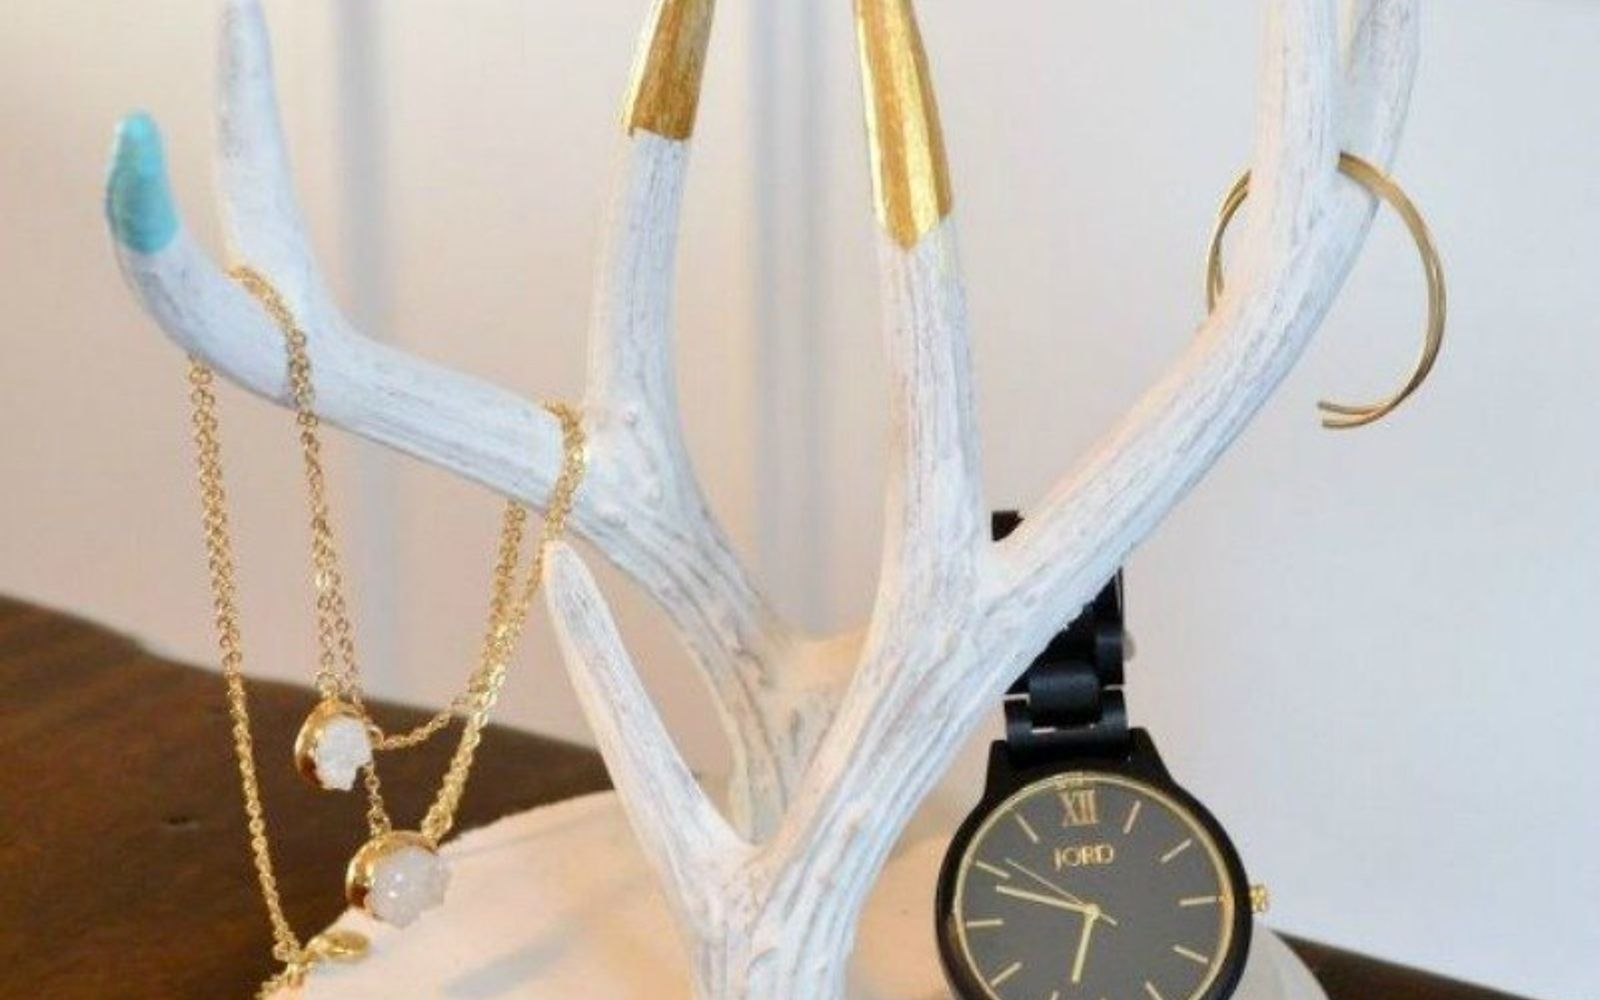 s 21 jewelry organizing ideas that are better than a jewelry box, organizing, This chic antler piece